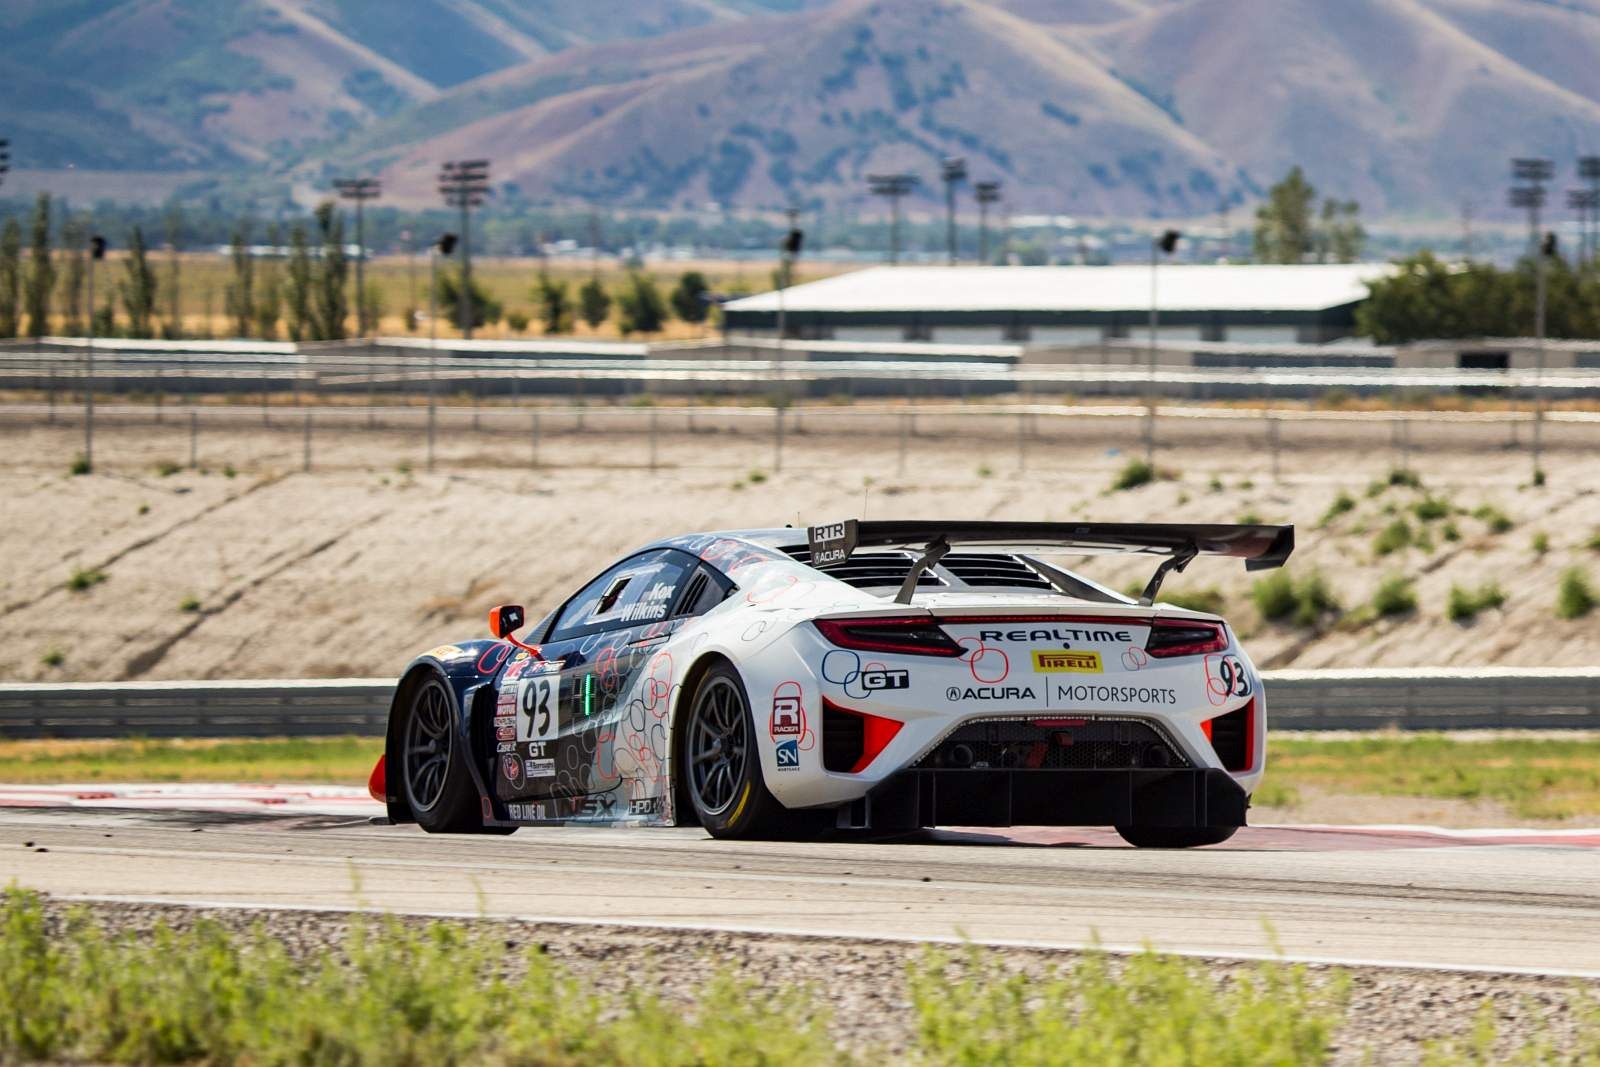 peter-kox-realtime-racing-pirelli-world-challenge-utah-motorsport-campus--111